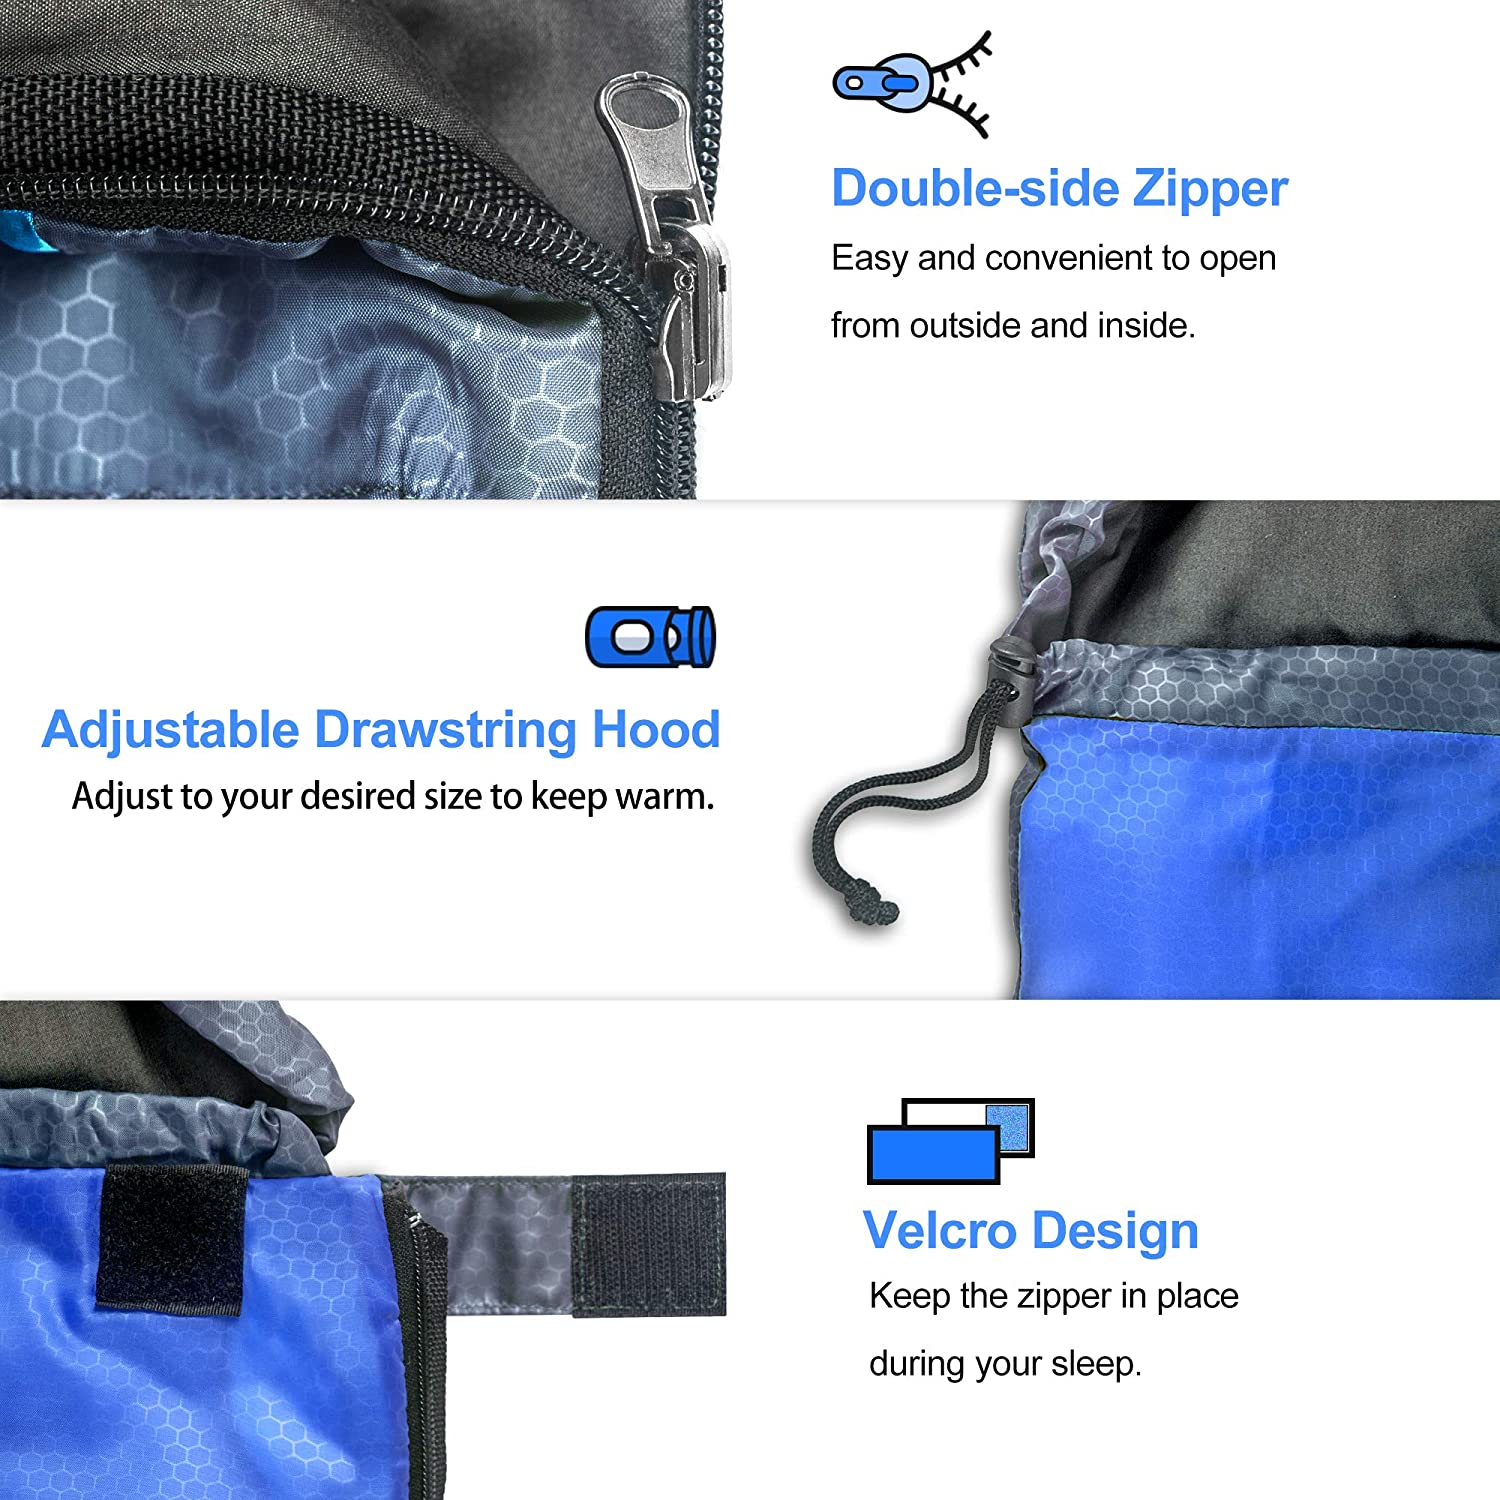 Kids Teens Adults Couples Waterproof Lightweight for Indoor /& Outdoor 5-85℉ 4 Seasons Warm and Comforable Camping Gear Equipment for Hiking Traveling Backpacking arteesol Sleeping Bag